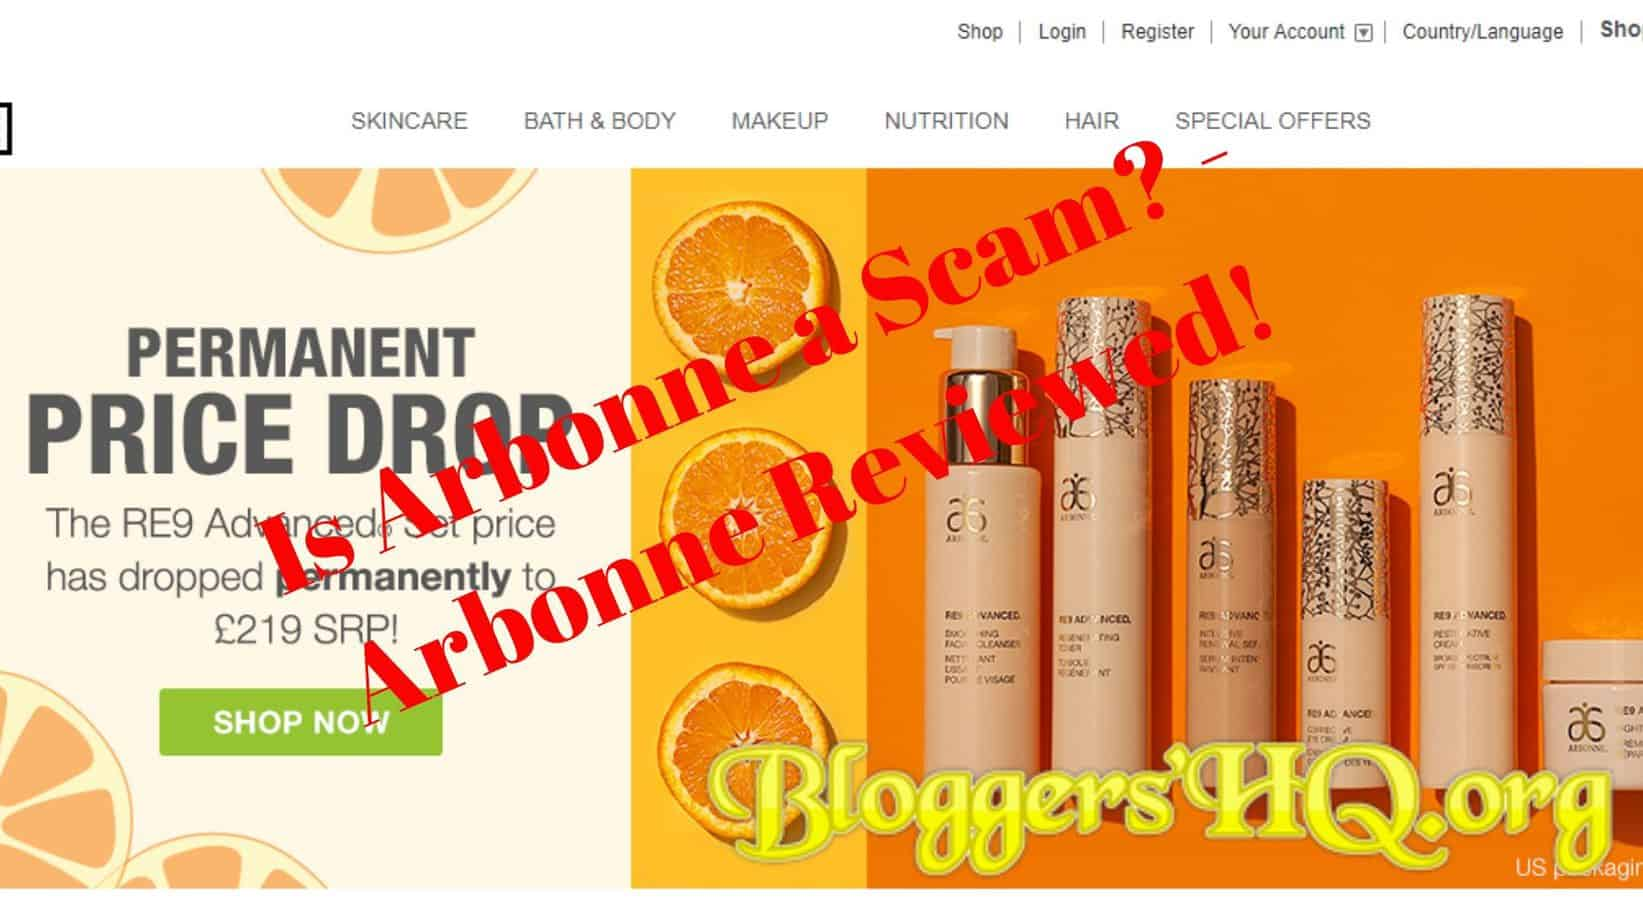 Is Arbonne a Scam? Another Pyramid Scheme? [Review] | BloggersHQ Org